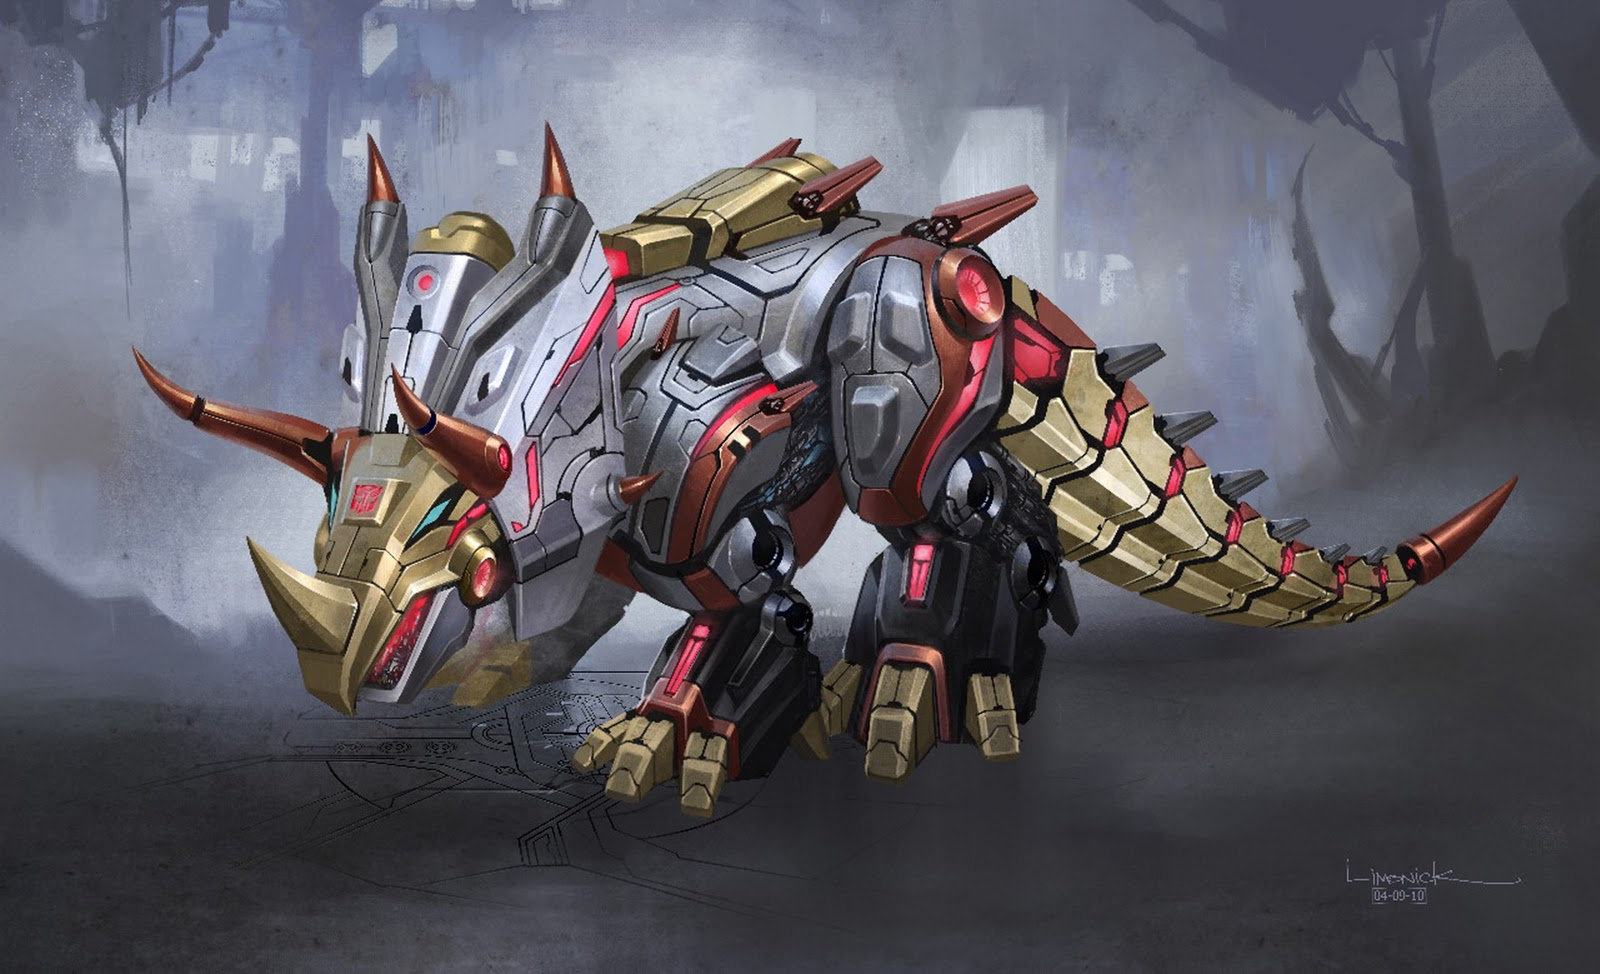 TRANSFORMERS FALL OF CYBERTRON OFFICIAL CONCEPT ART POSTERS 1600x974